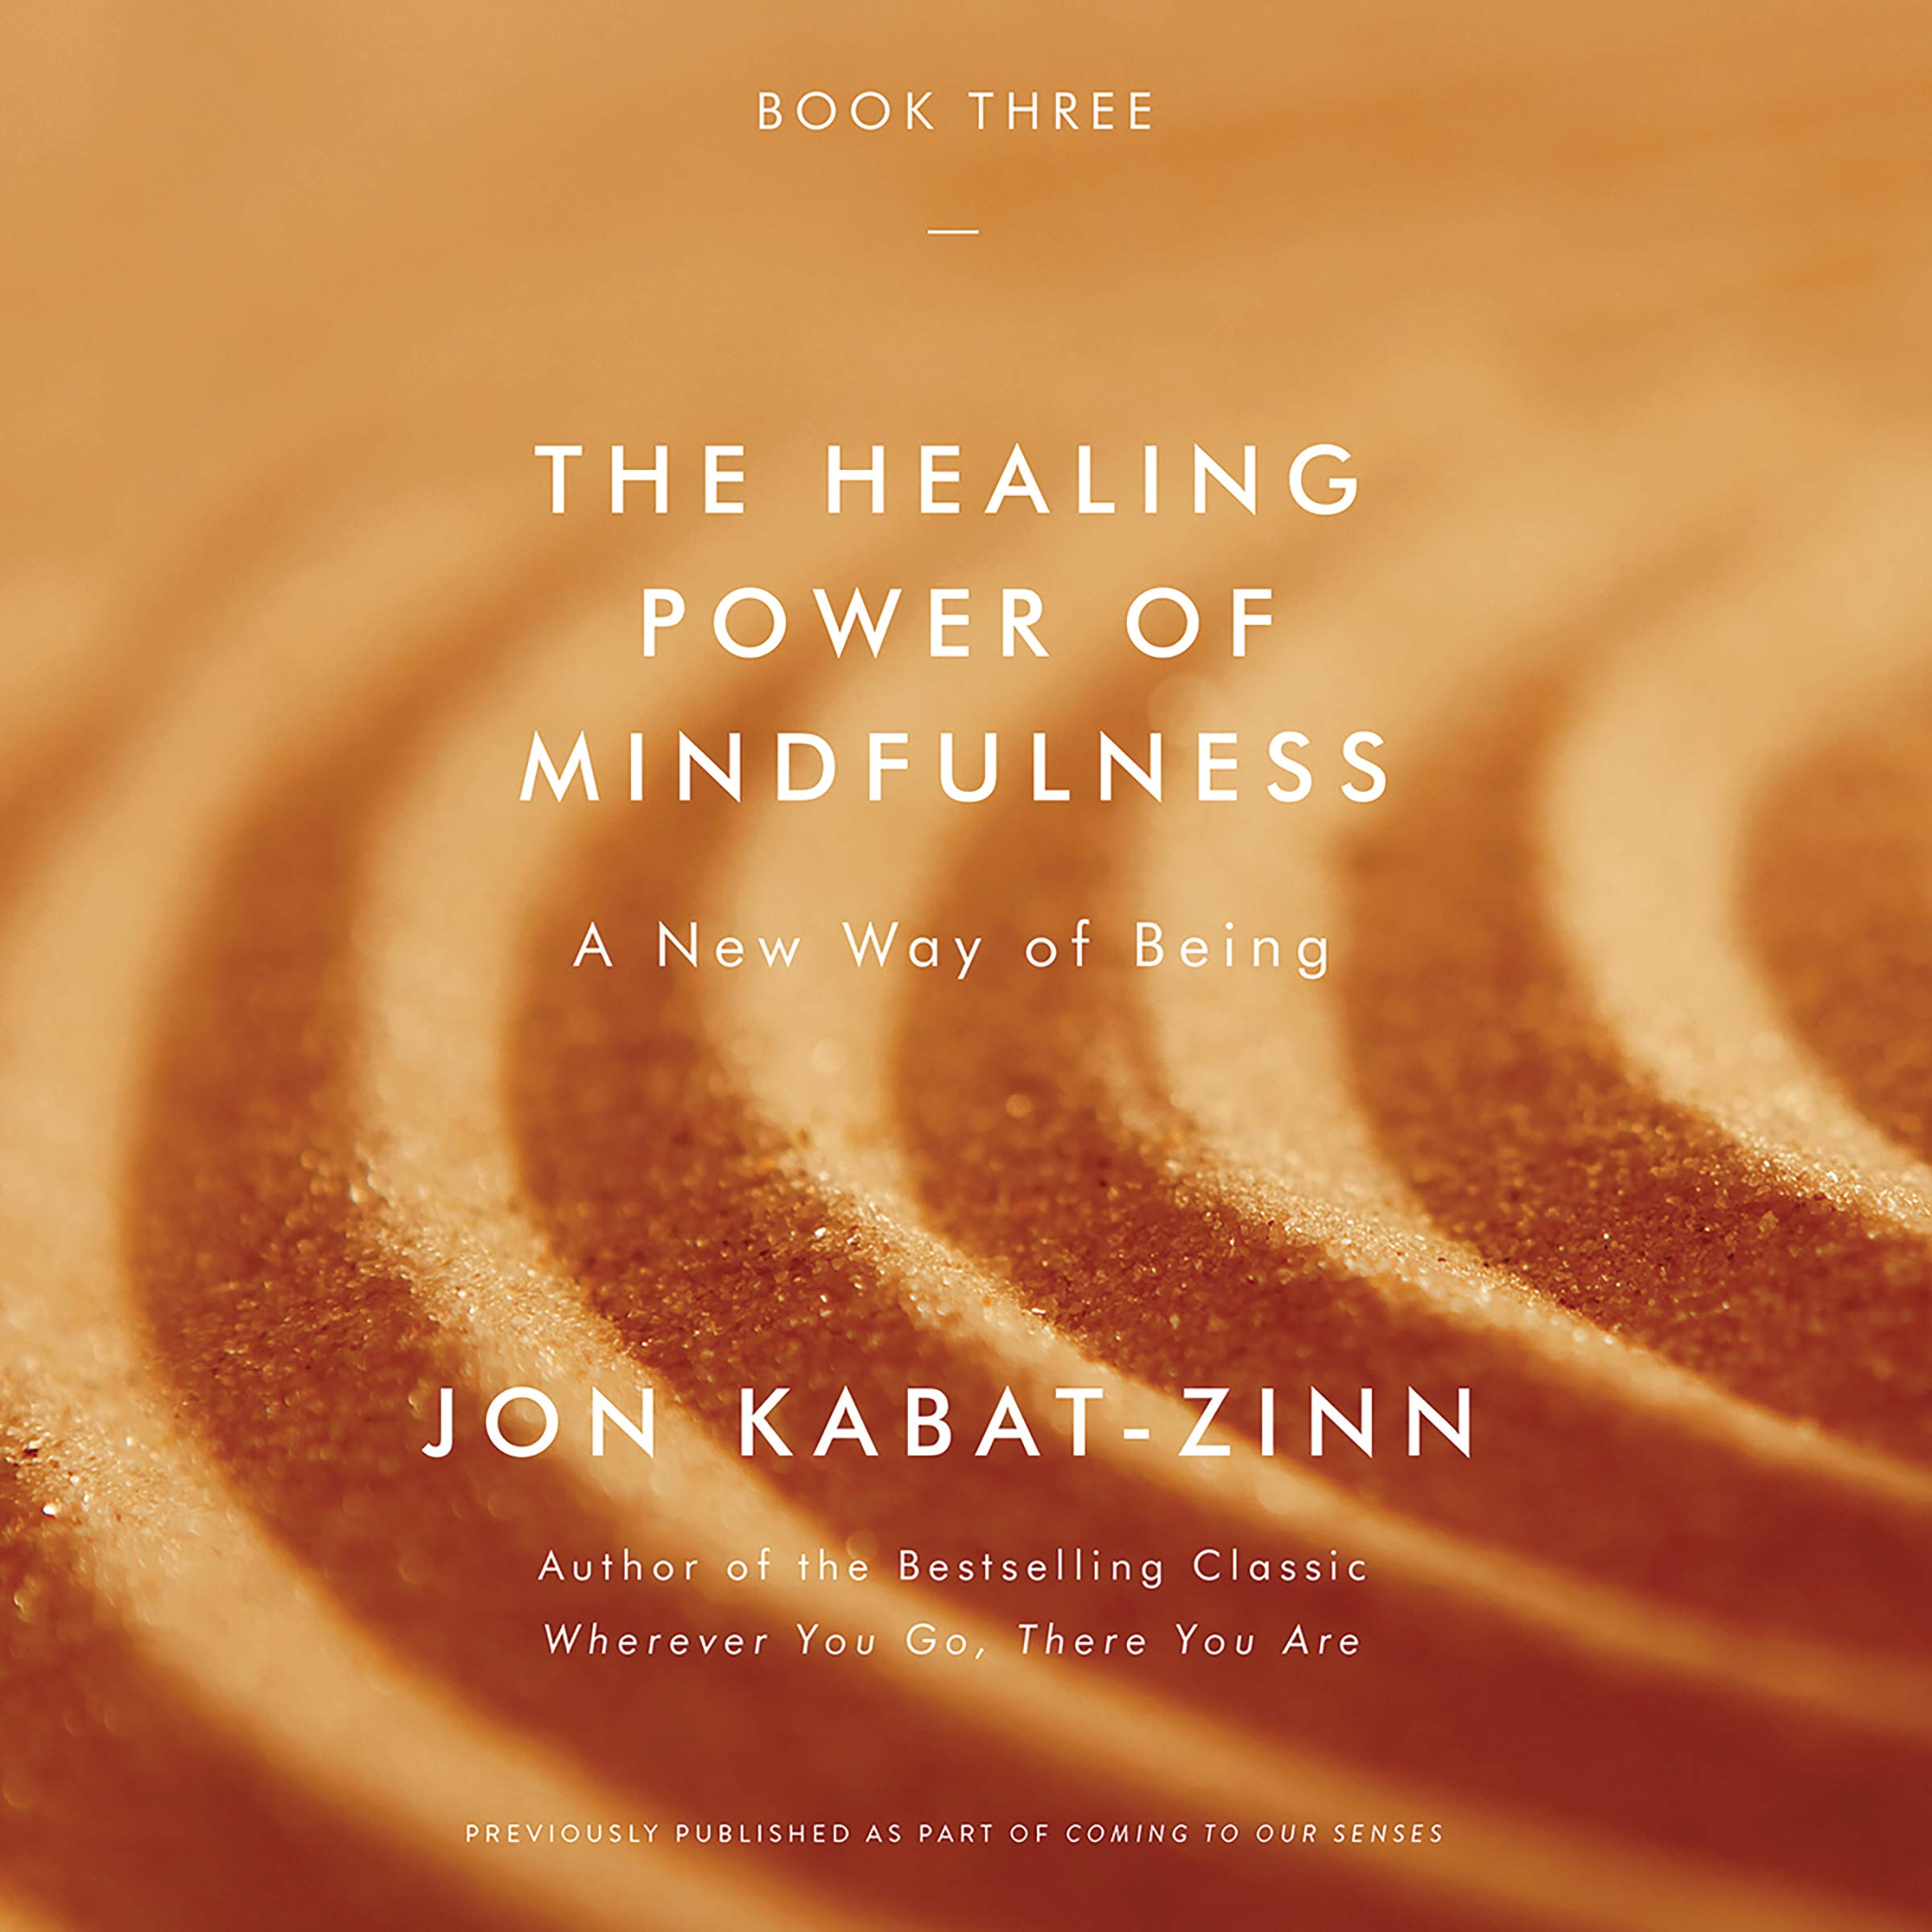 How Mindfulness Has Changed Way >> The Healing Power Of Mindfulness A New Way Of Being Jon Kabat Zinn